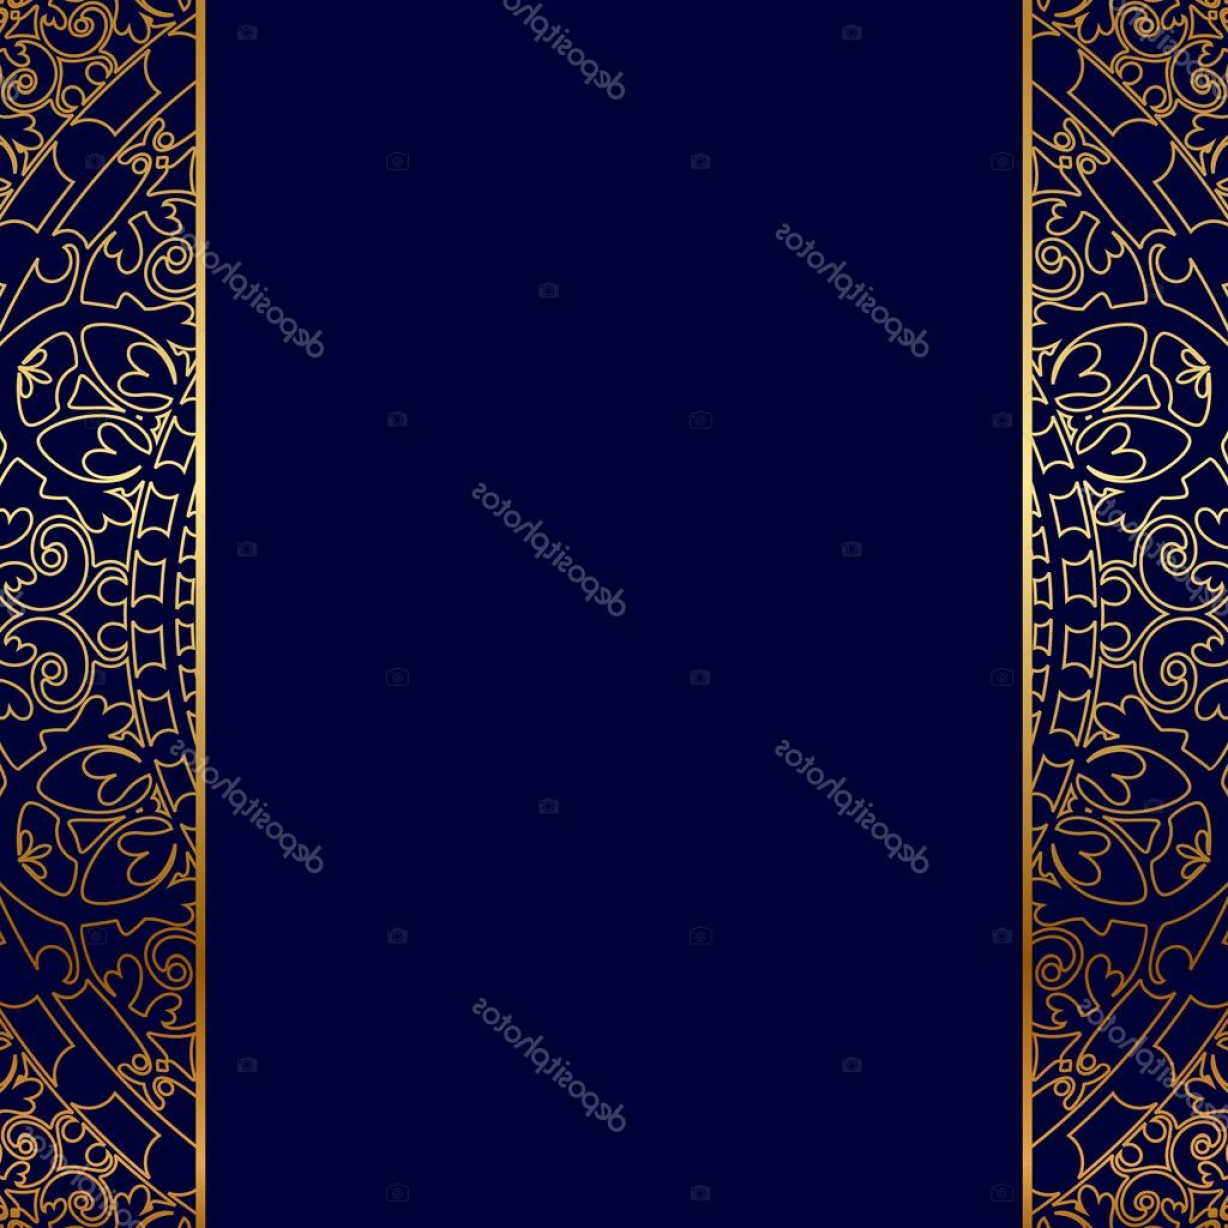 Blue And Gold Border Vector: Stock Illustration Vector Gold Ornate Border